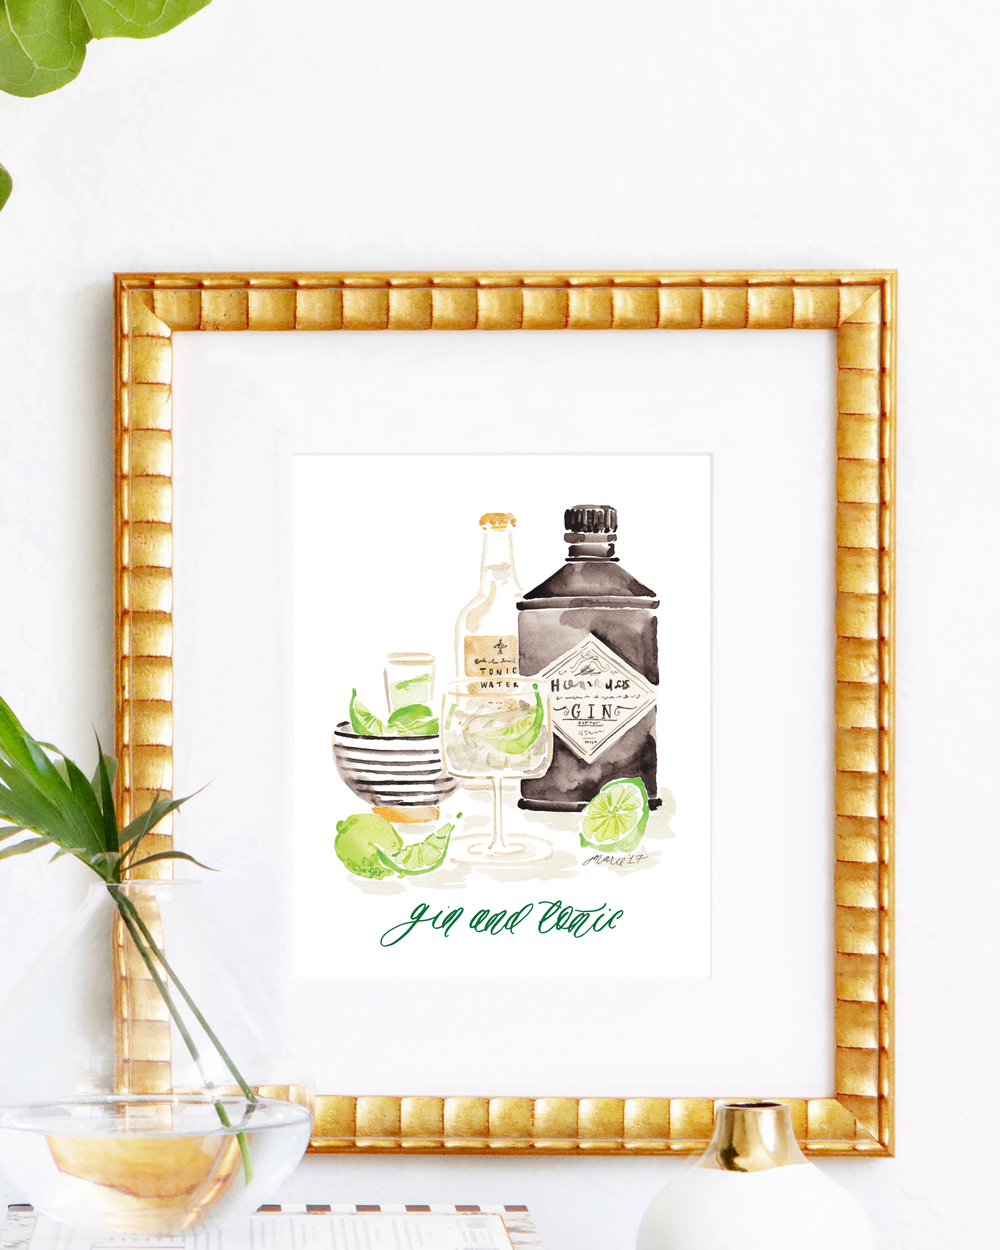 Classic Gin and Tonic cocktail recipe | Gin and Tonic watercolor art print by Simply Jessica Marie | SC Stockshop